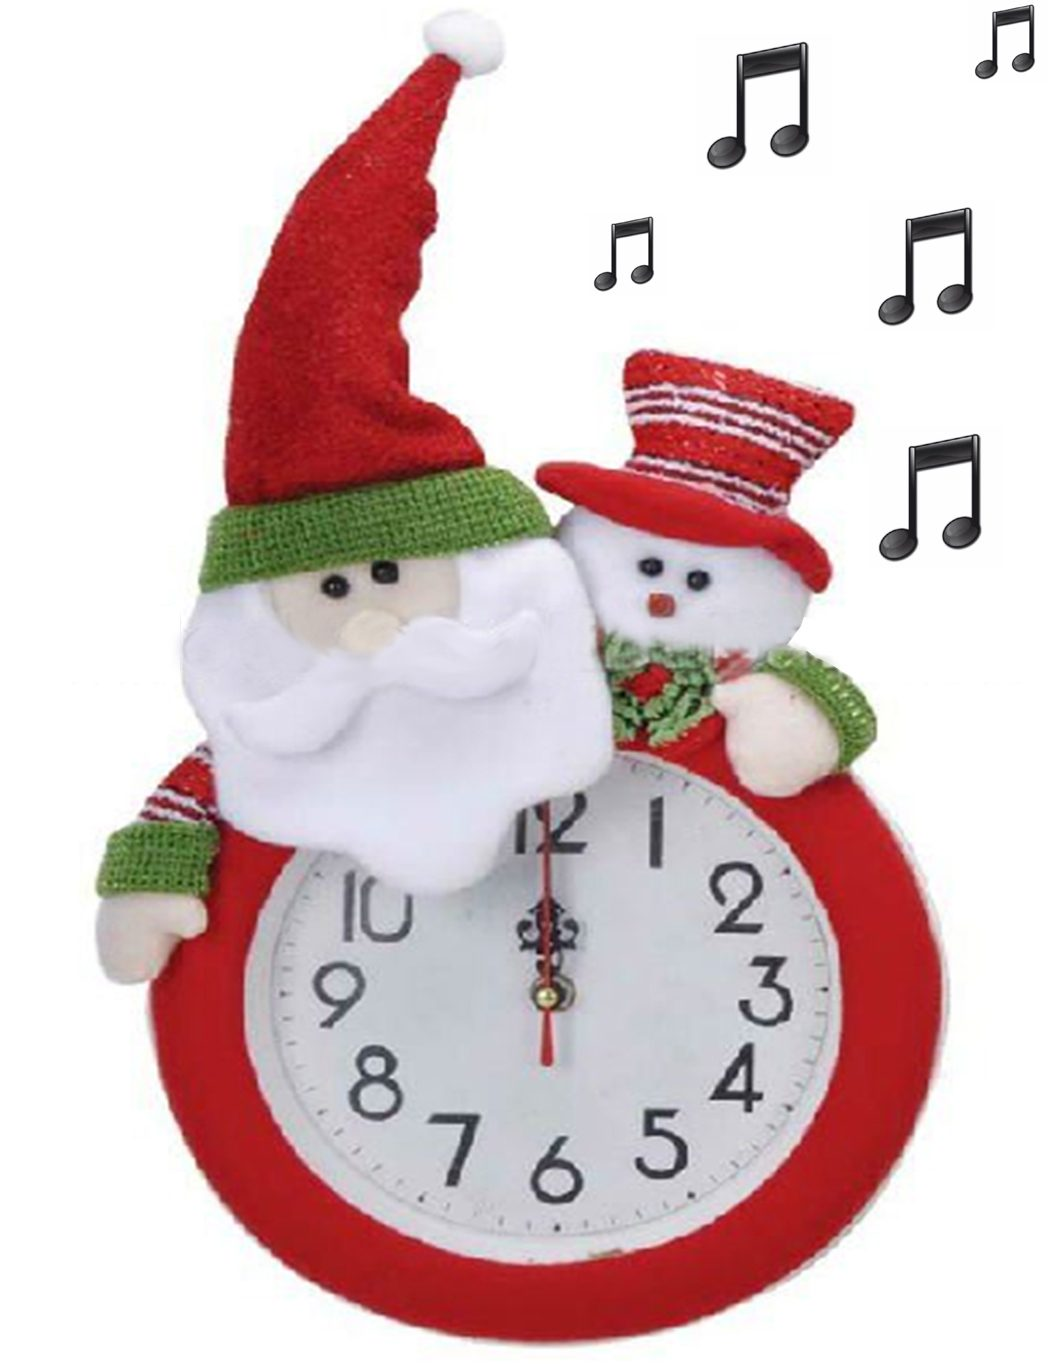 Musical christmas clock Ø24cm | AIC International